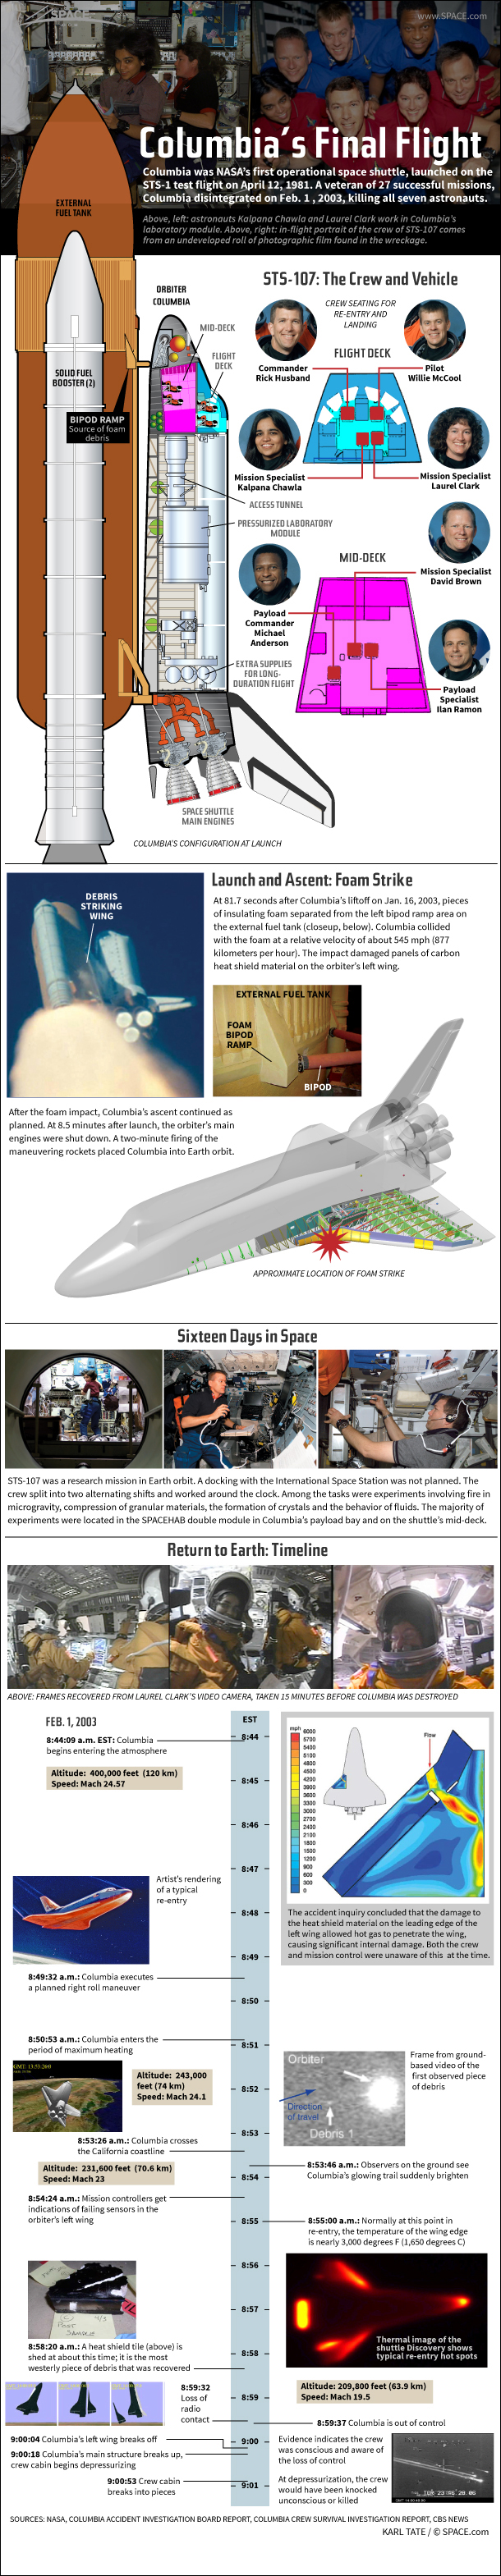 Space Shuttle Disasters Timeline - Pics about space